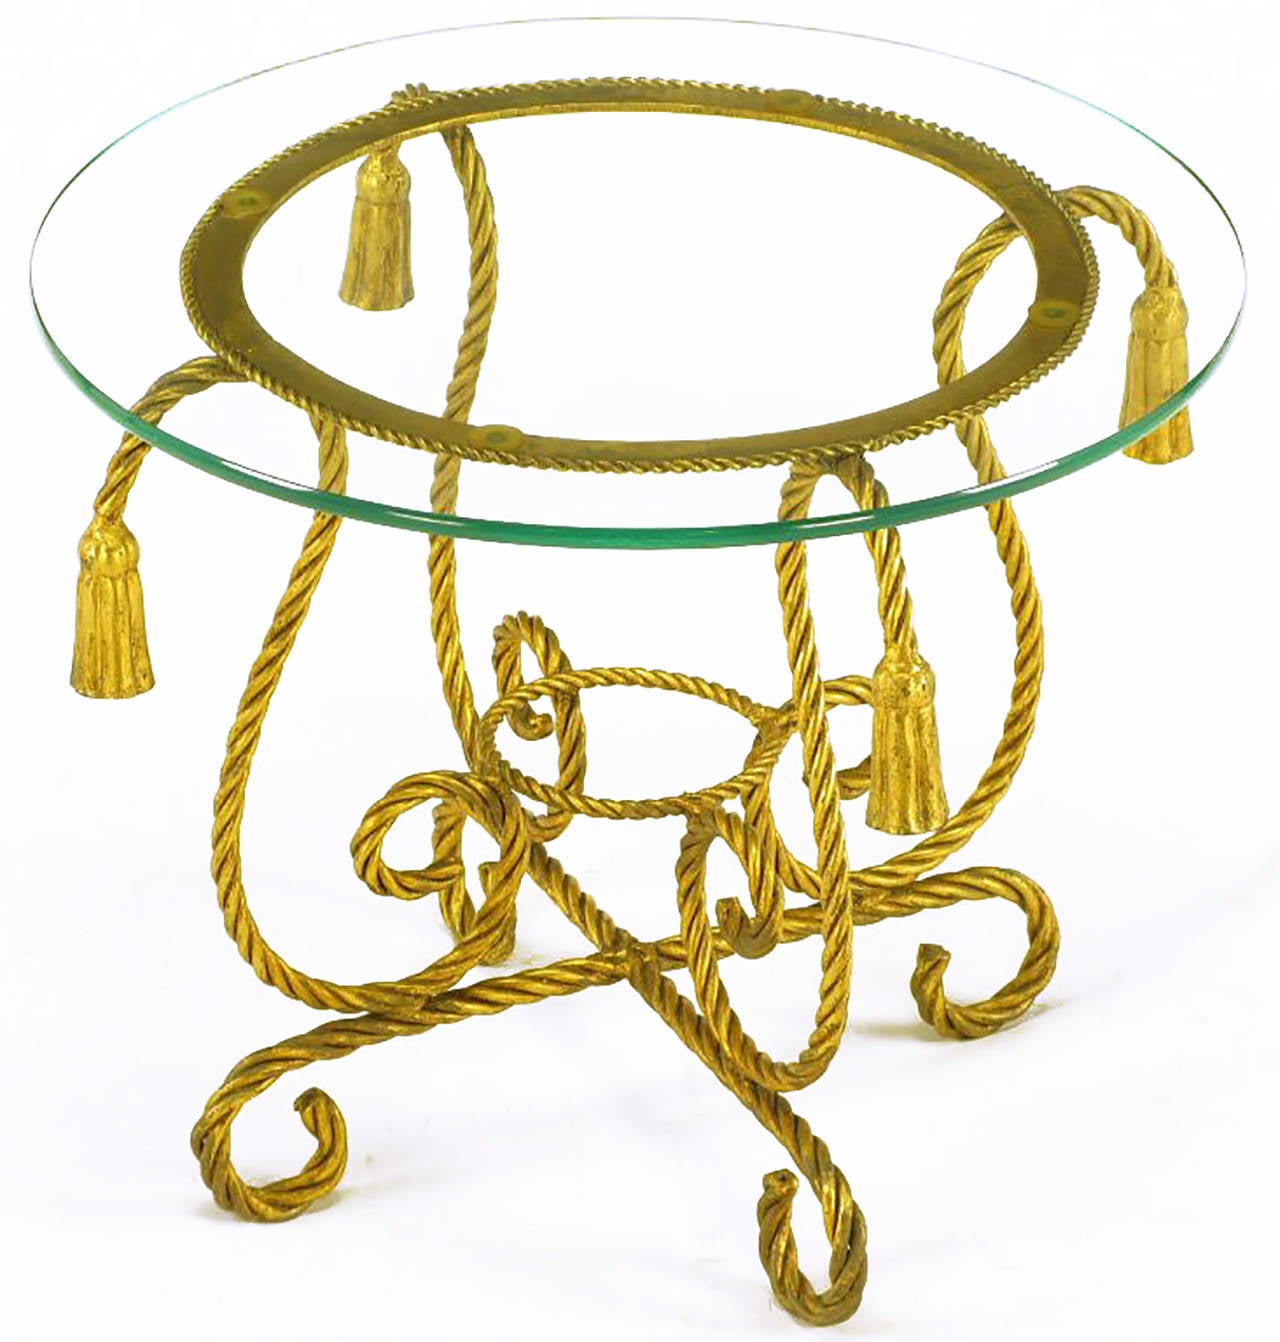 Pair of Italian Gilt Iron Rope Tables with Tassel Ornamentation In Excellent Condition For Sale In Chicago, IL